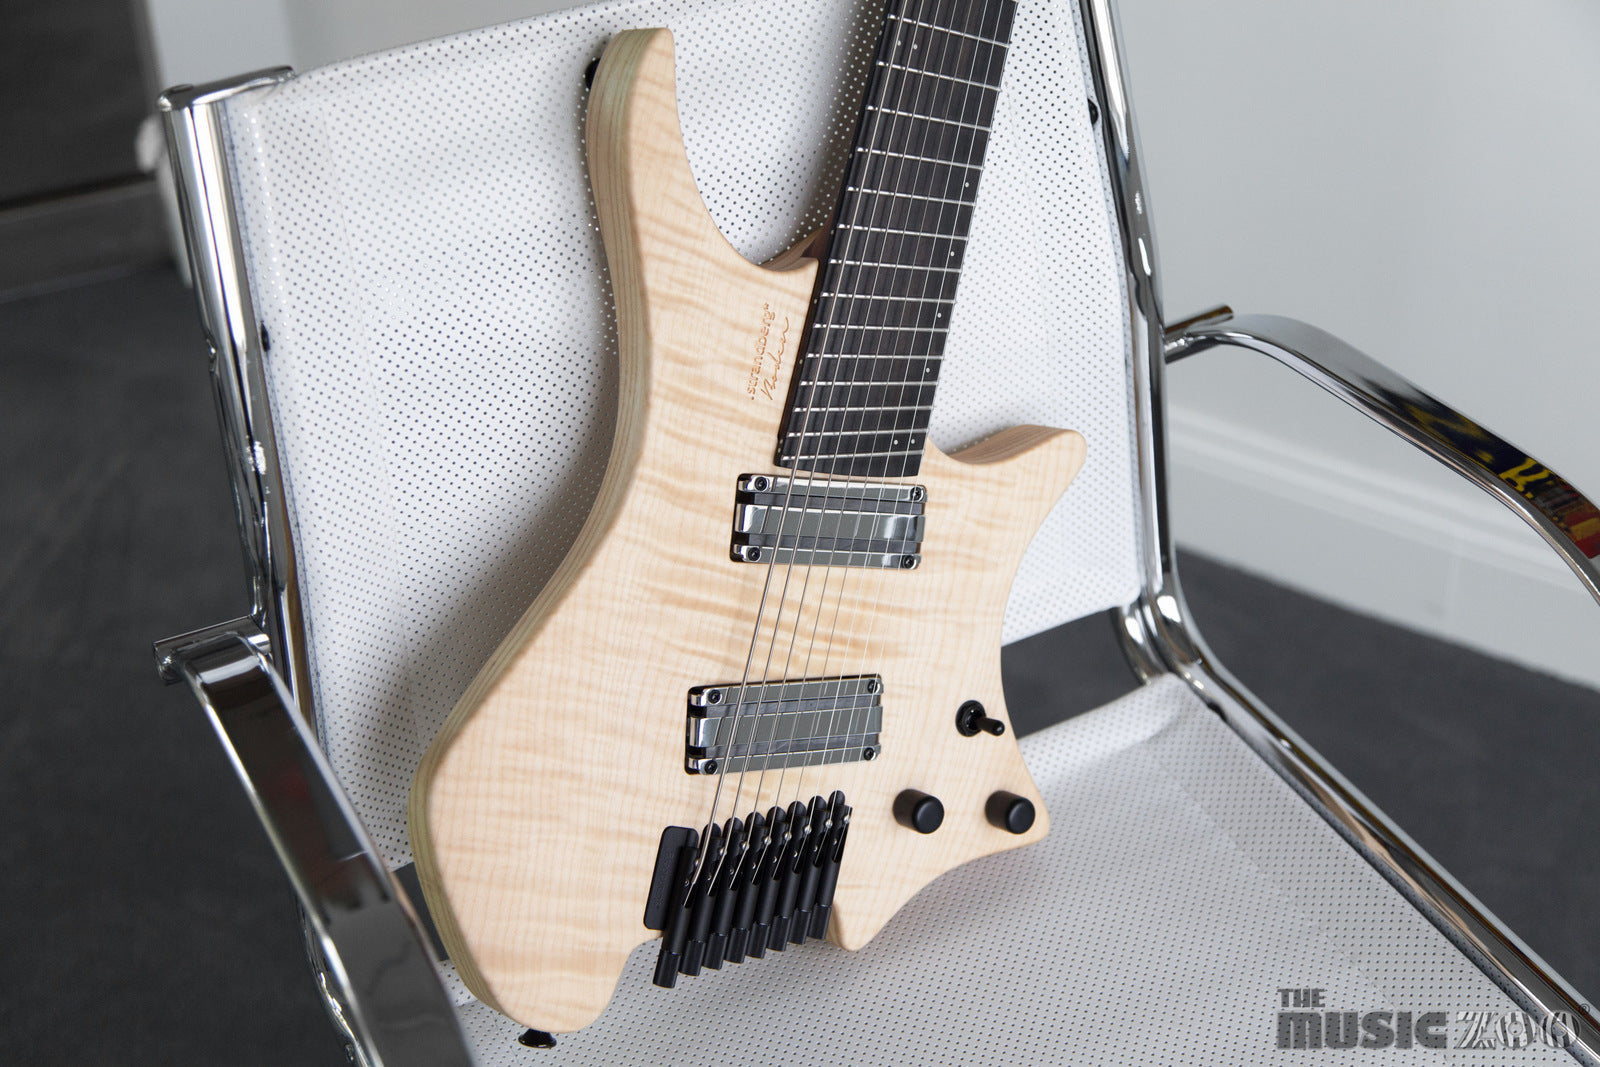 The Music Zoo Is An Authorized Strandberg Guitars Dealer Emg P Bass Pickups Wiring Reverb Boden 8 Us Custom Shop